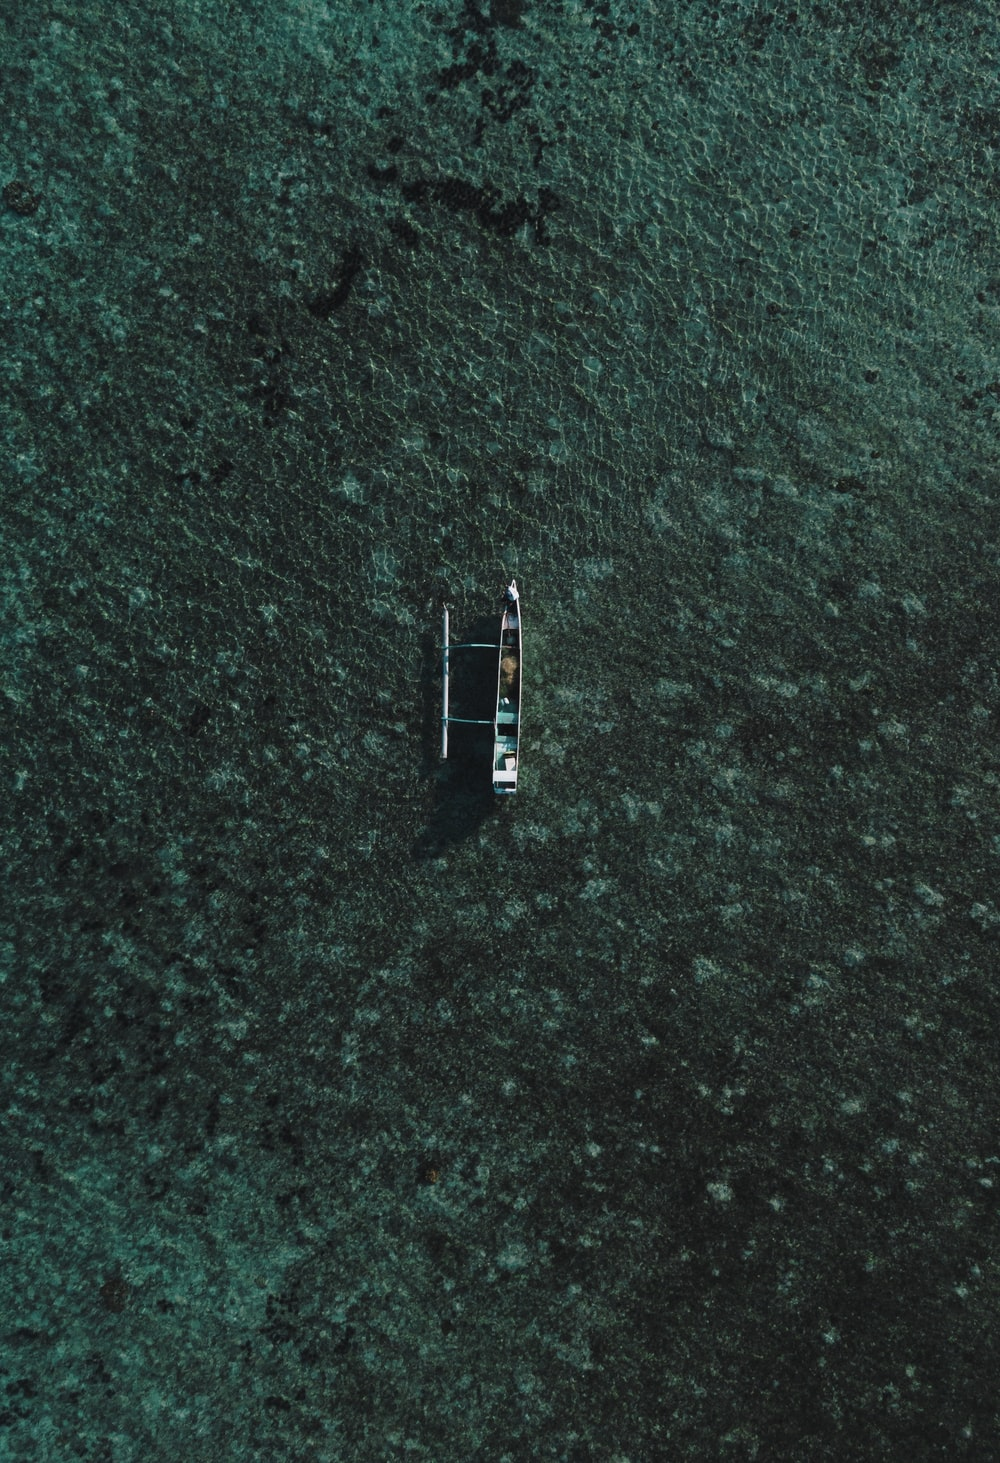 boat on green ground